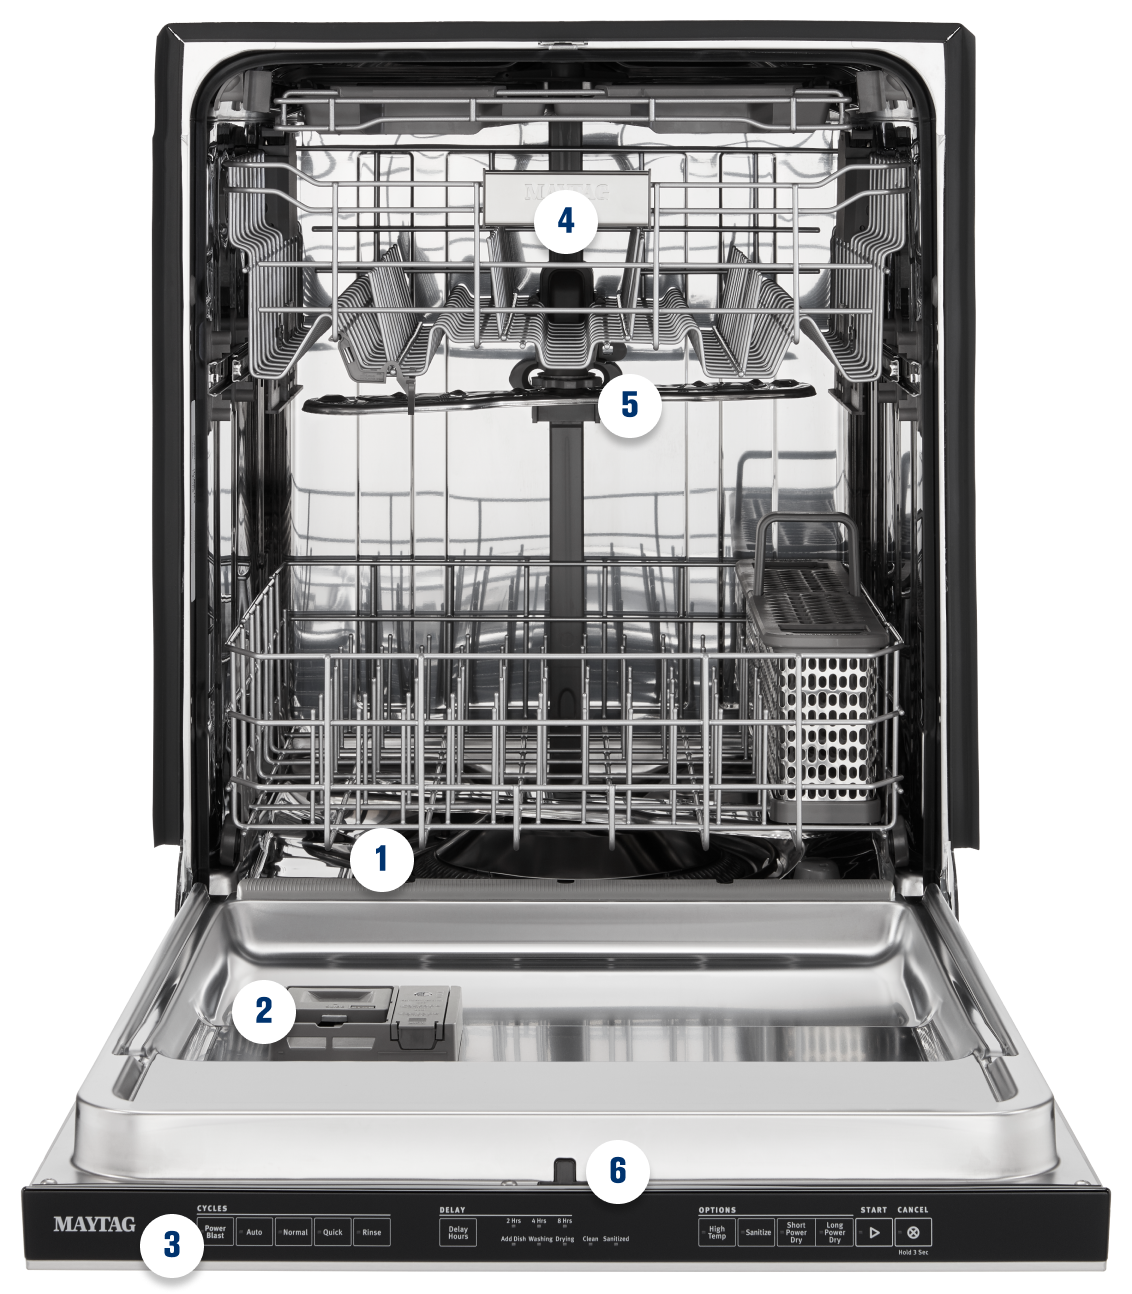 Detailed image of the inside of a dishwasher